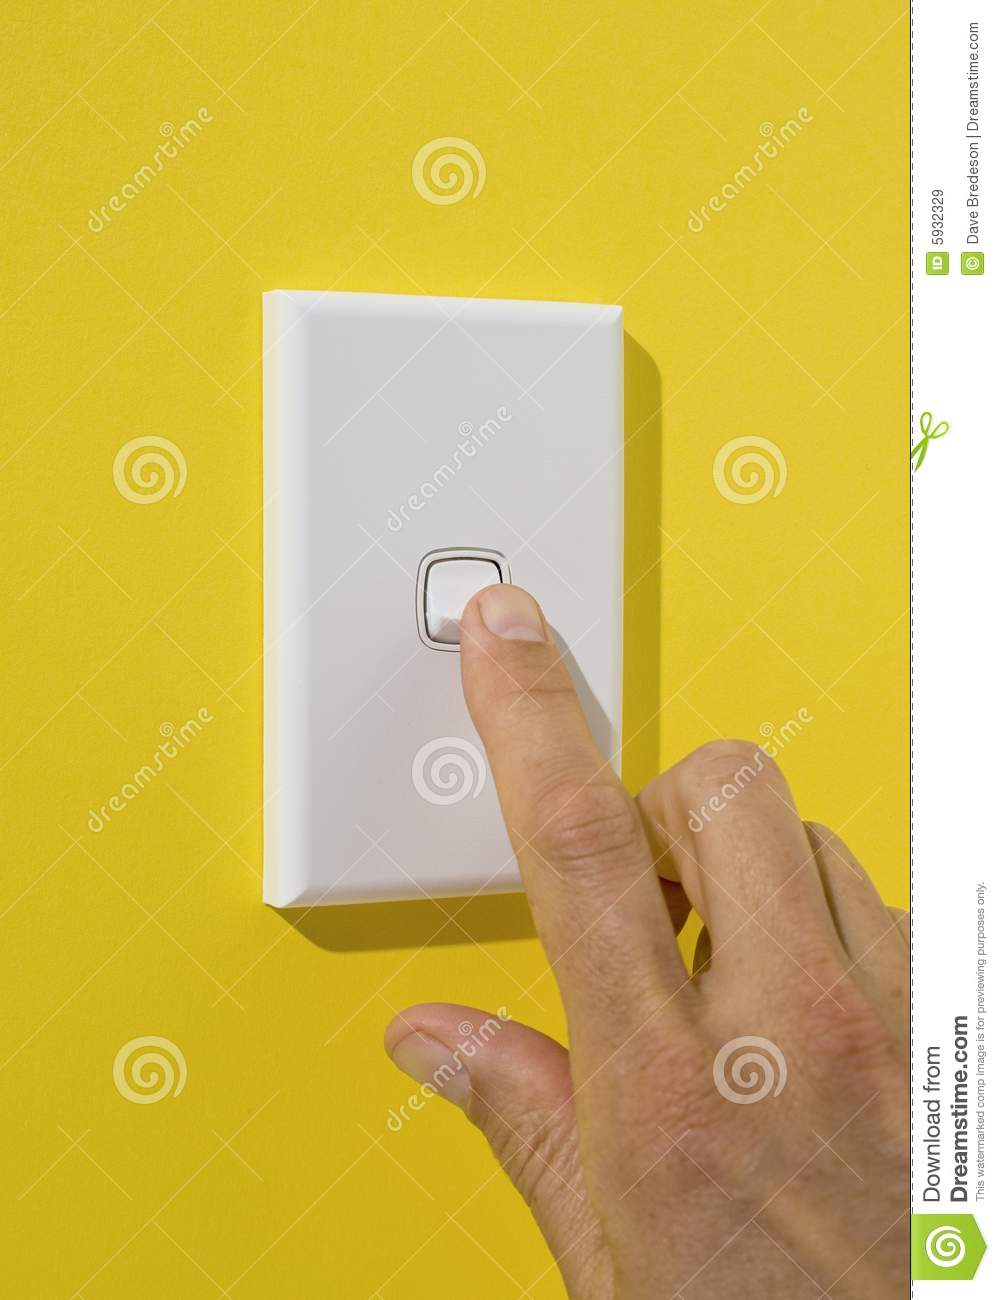 Light Switch Being Pushed